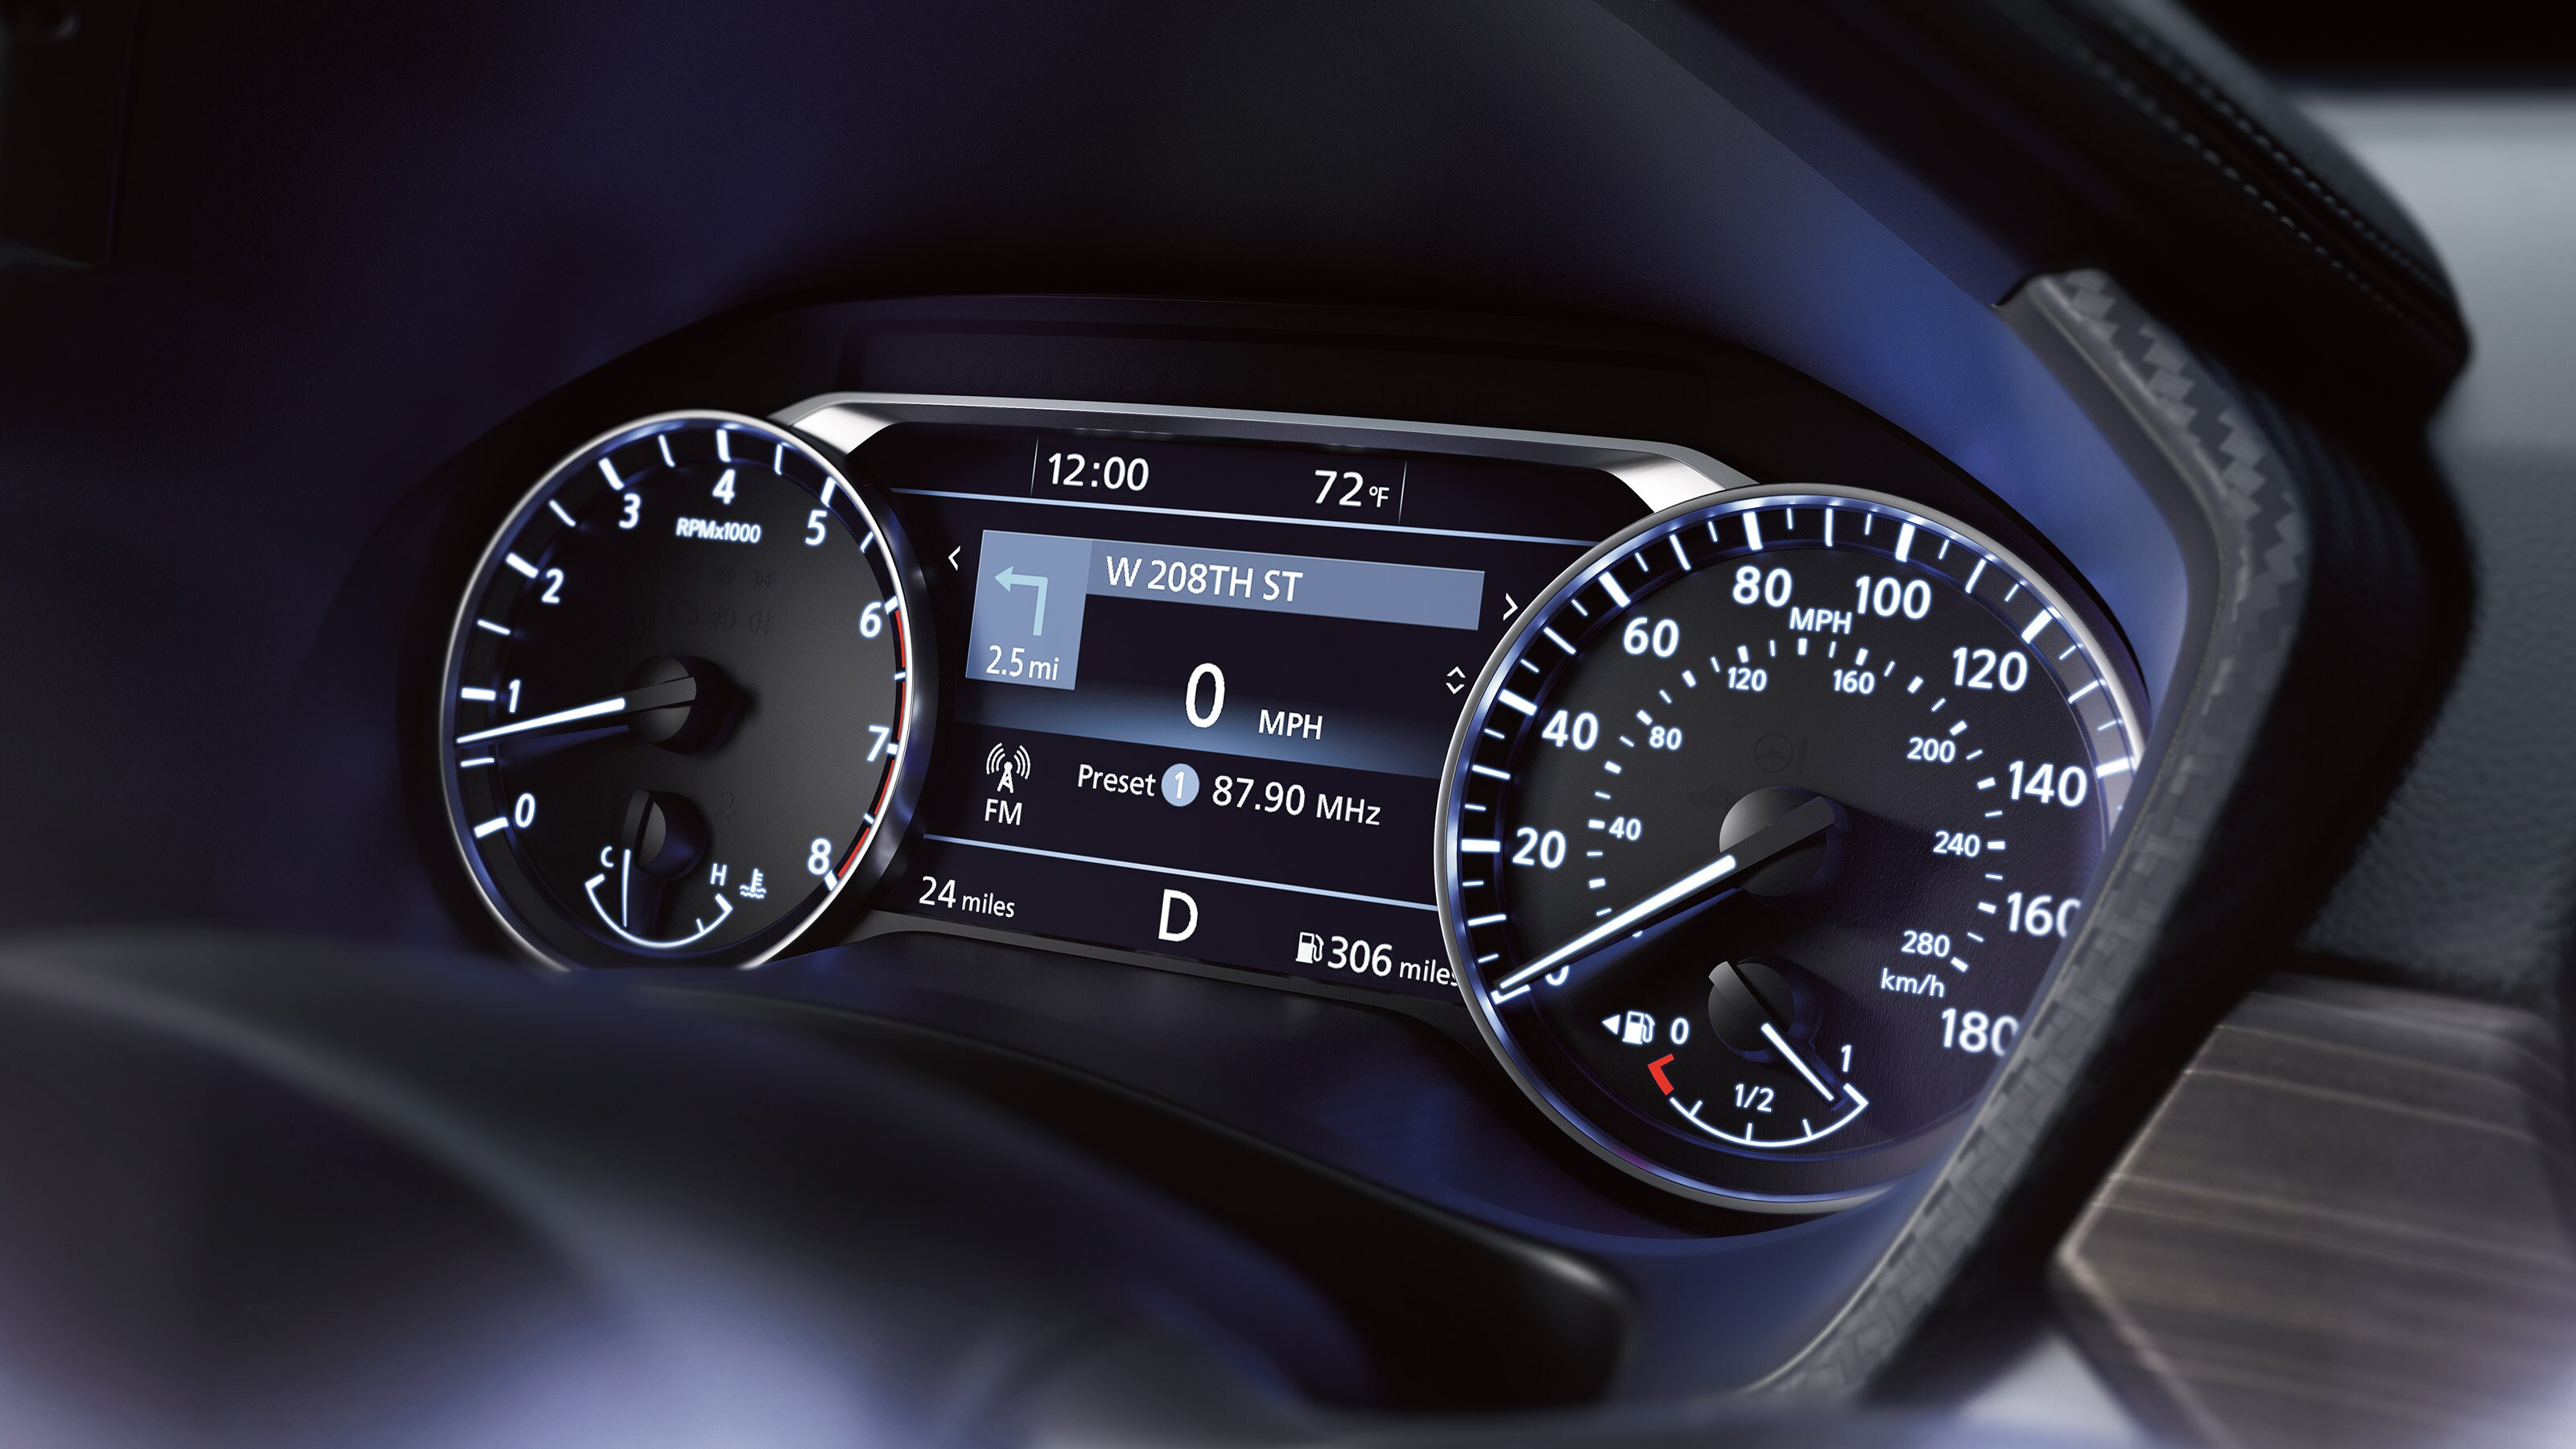 Gauges in the 2020 Nissan Altima